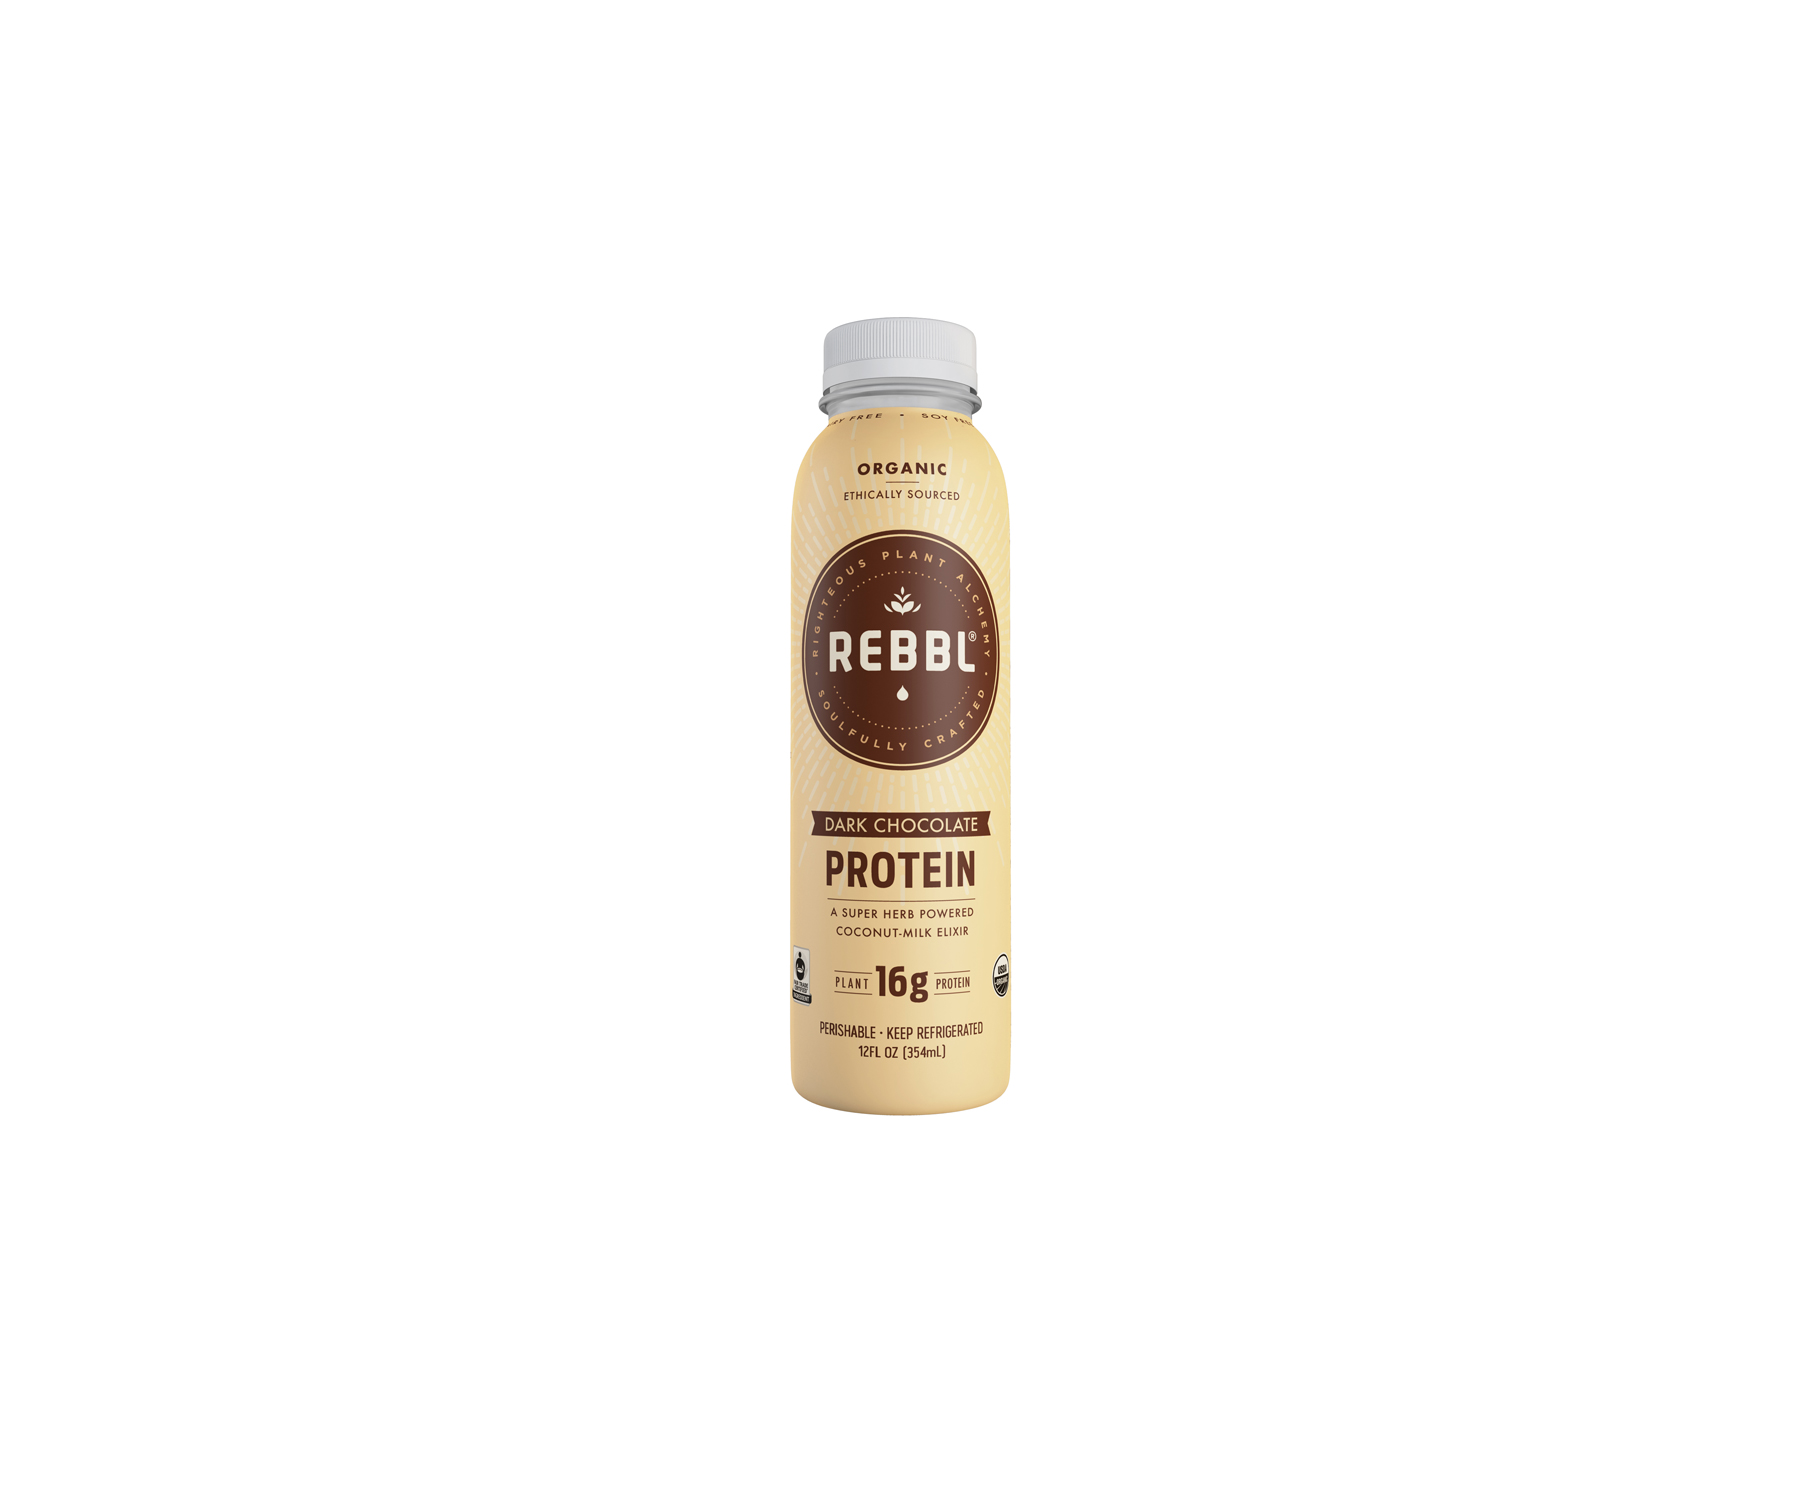 Gym bag essentials and luxuries - REBBL Protein Elixir